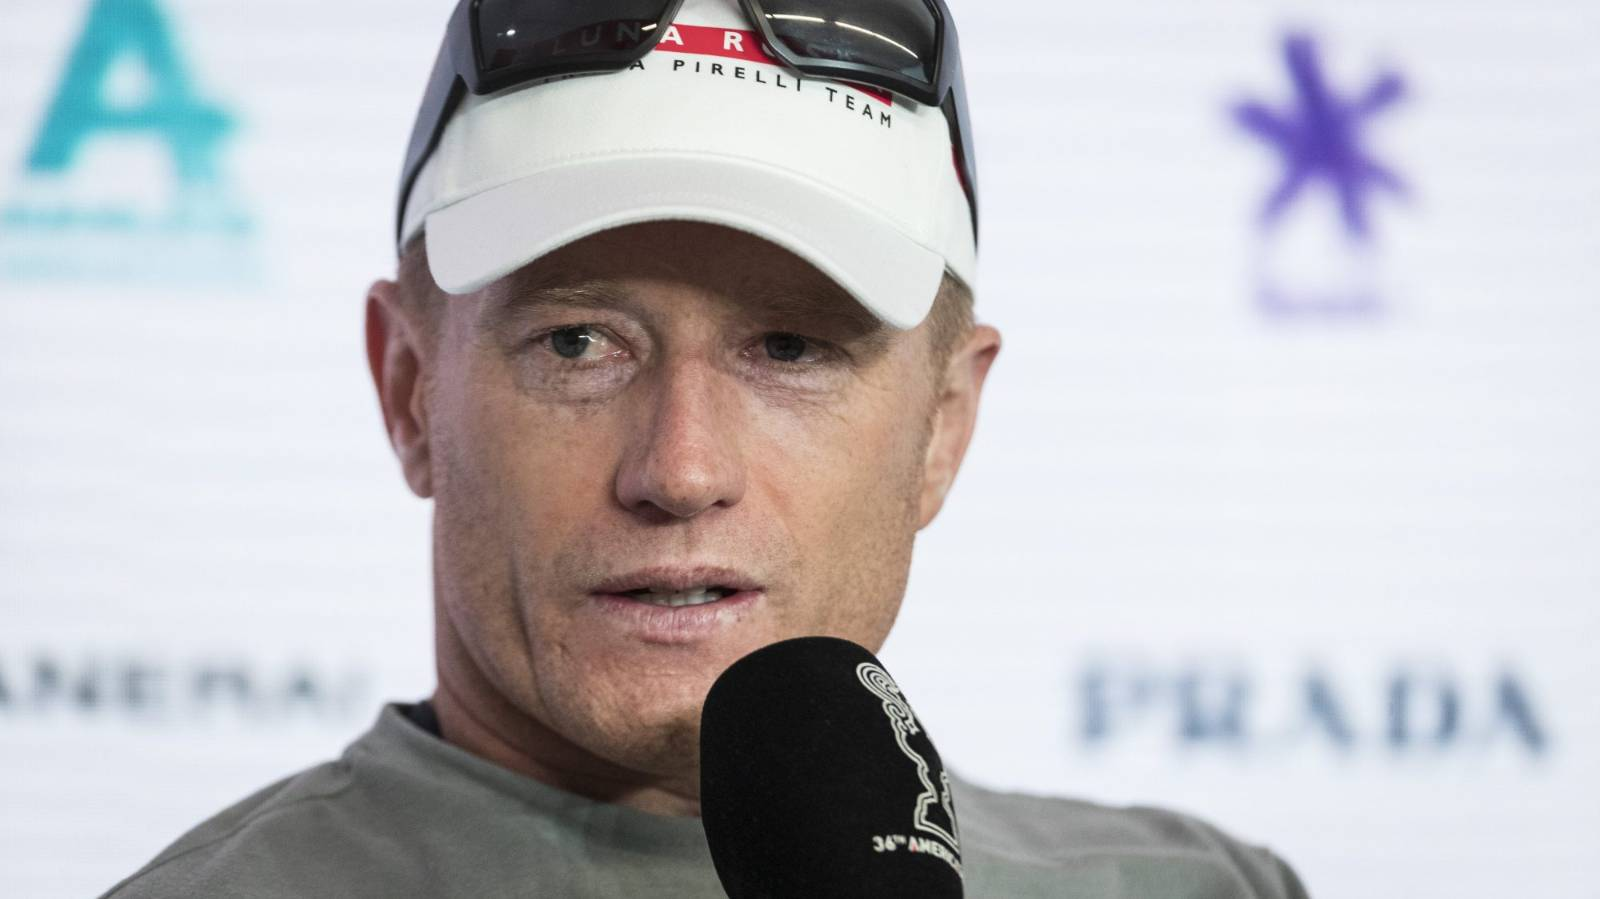 The legend of Jimmy Spithill sails again